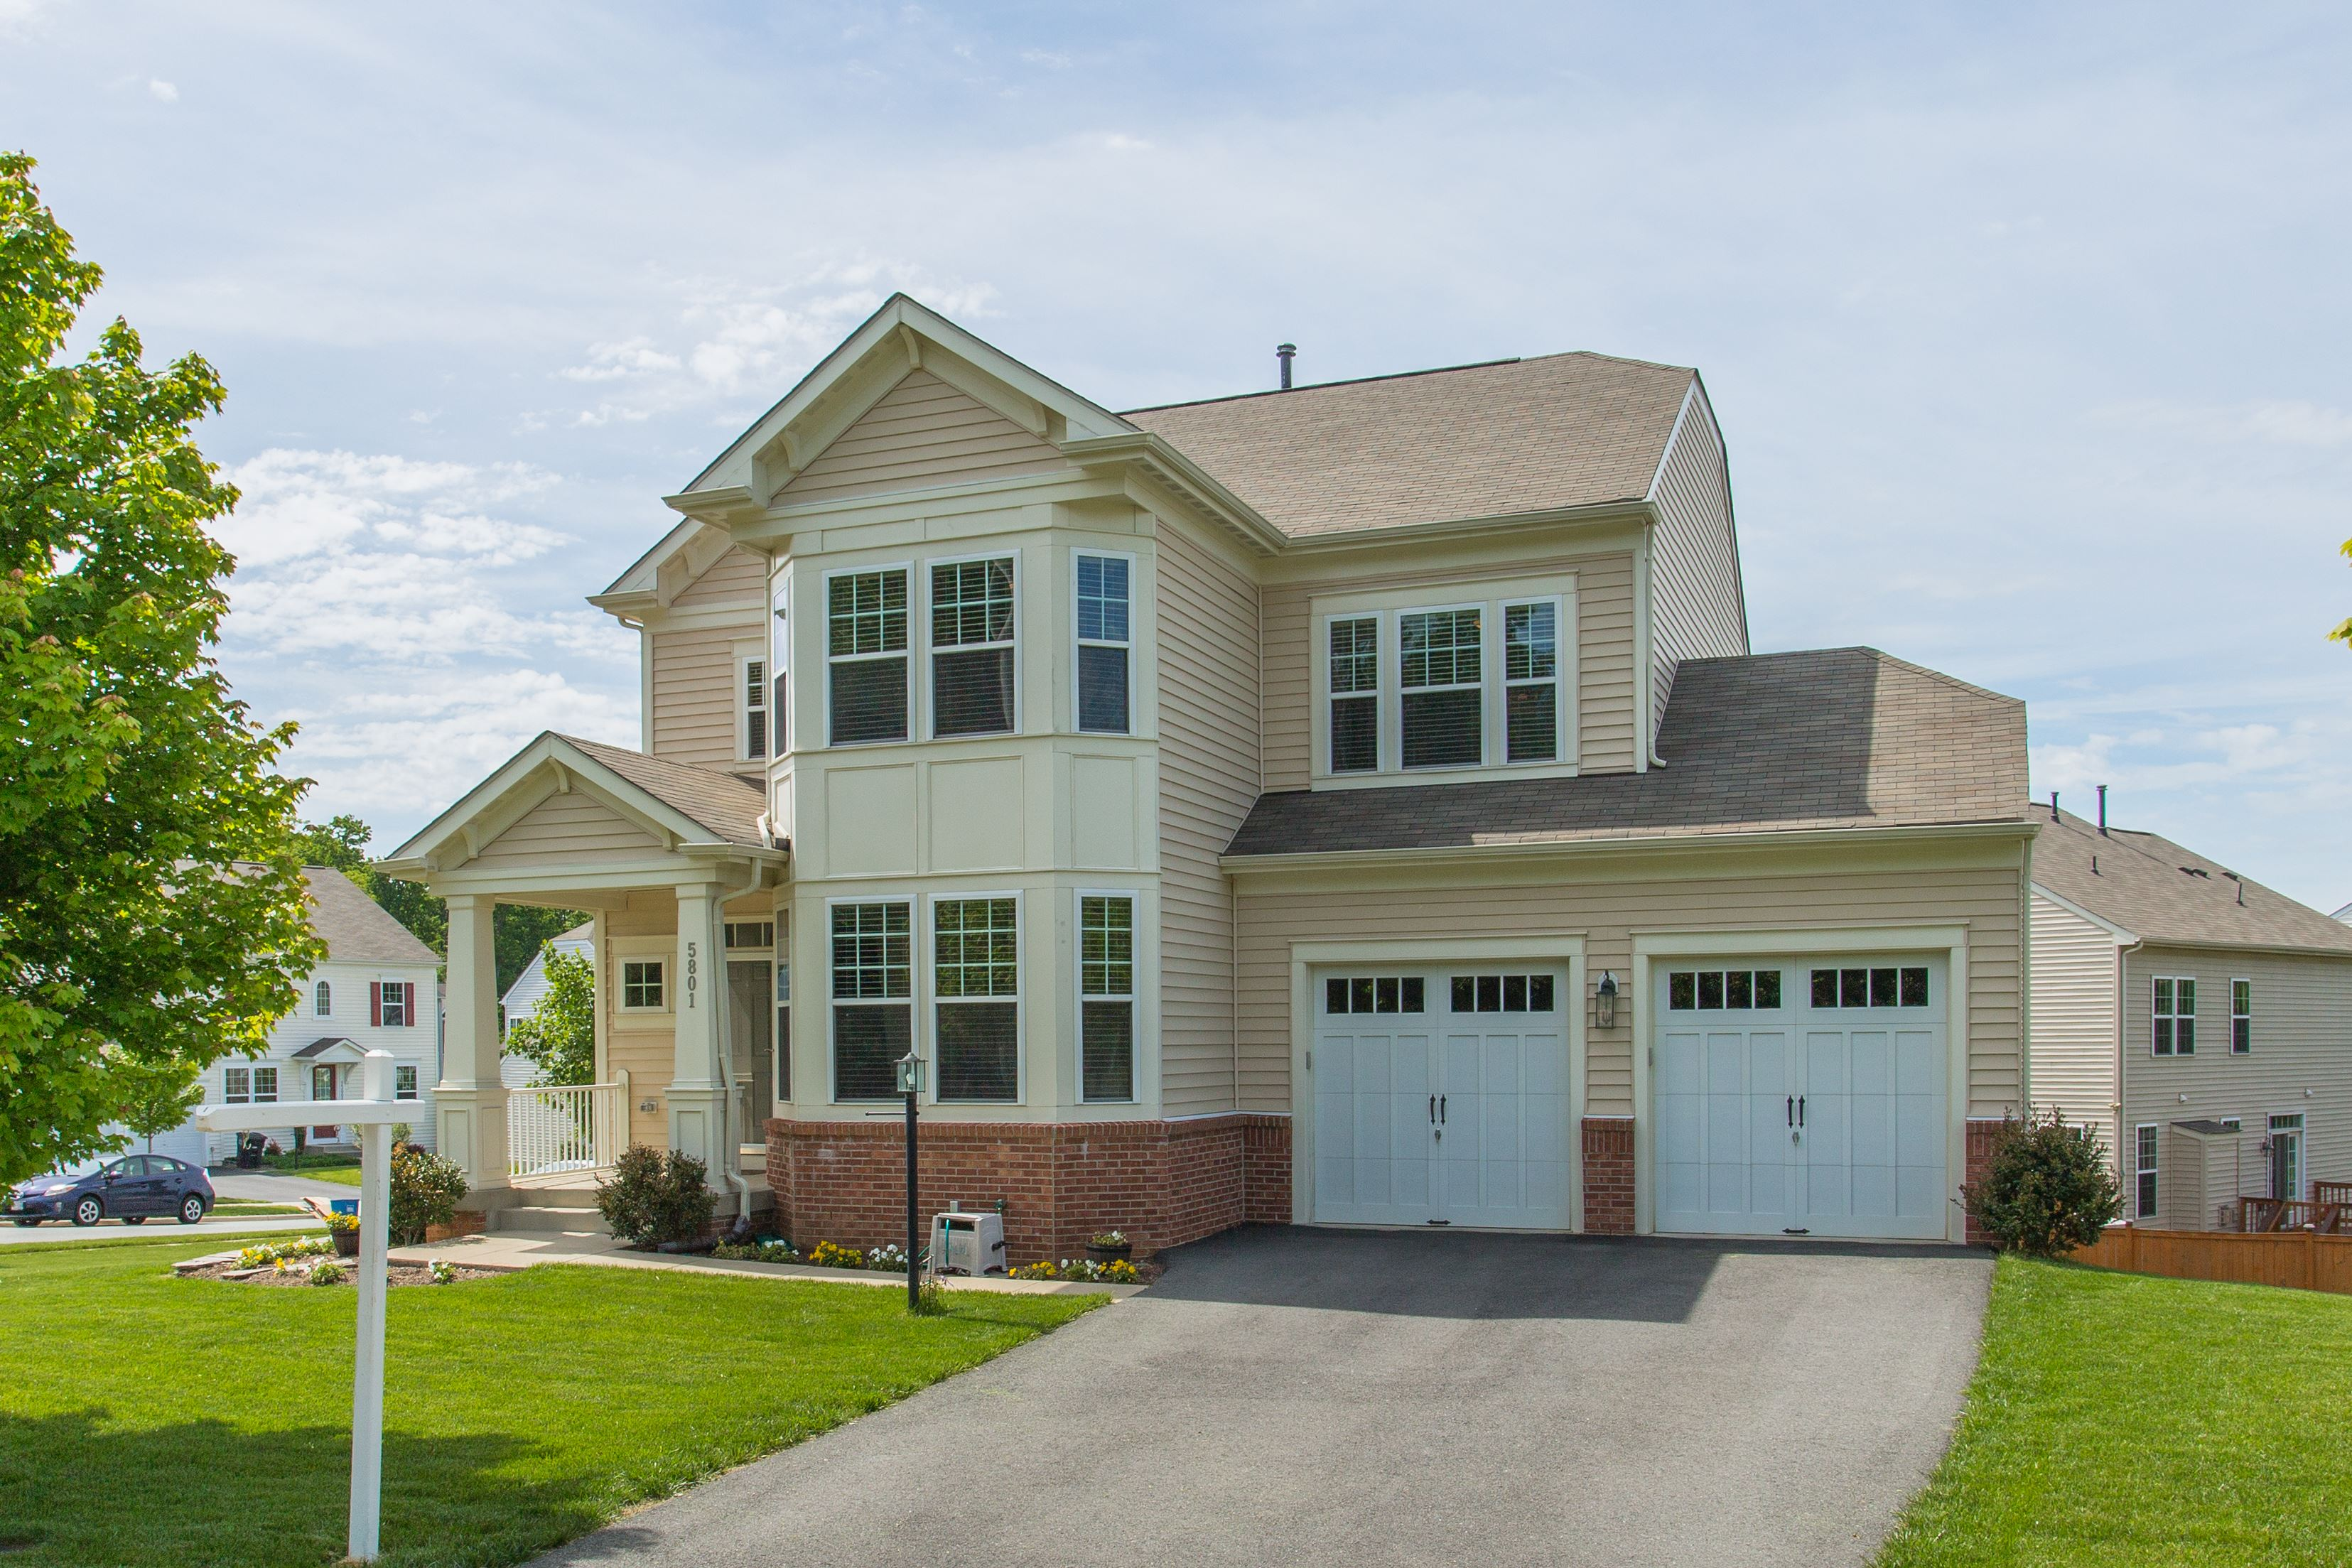 NEW LISTING: Stately 4 Bedroom Colonial In Manassas